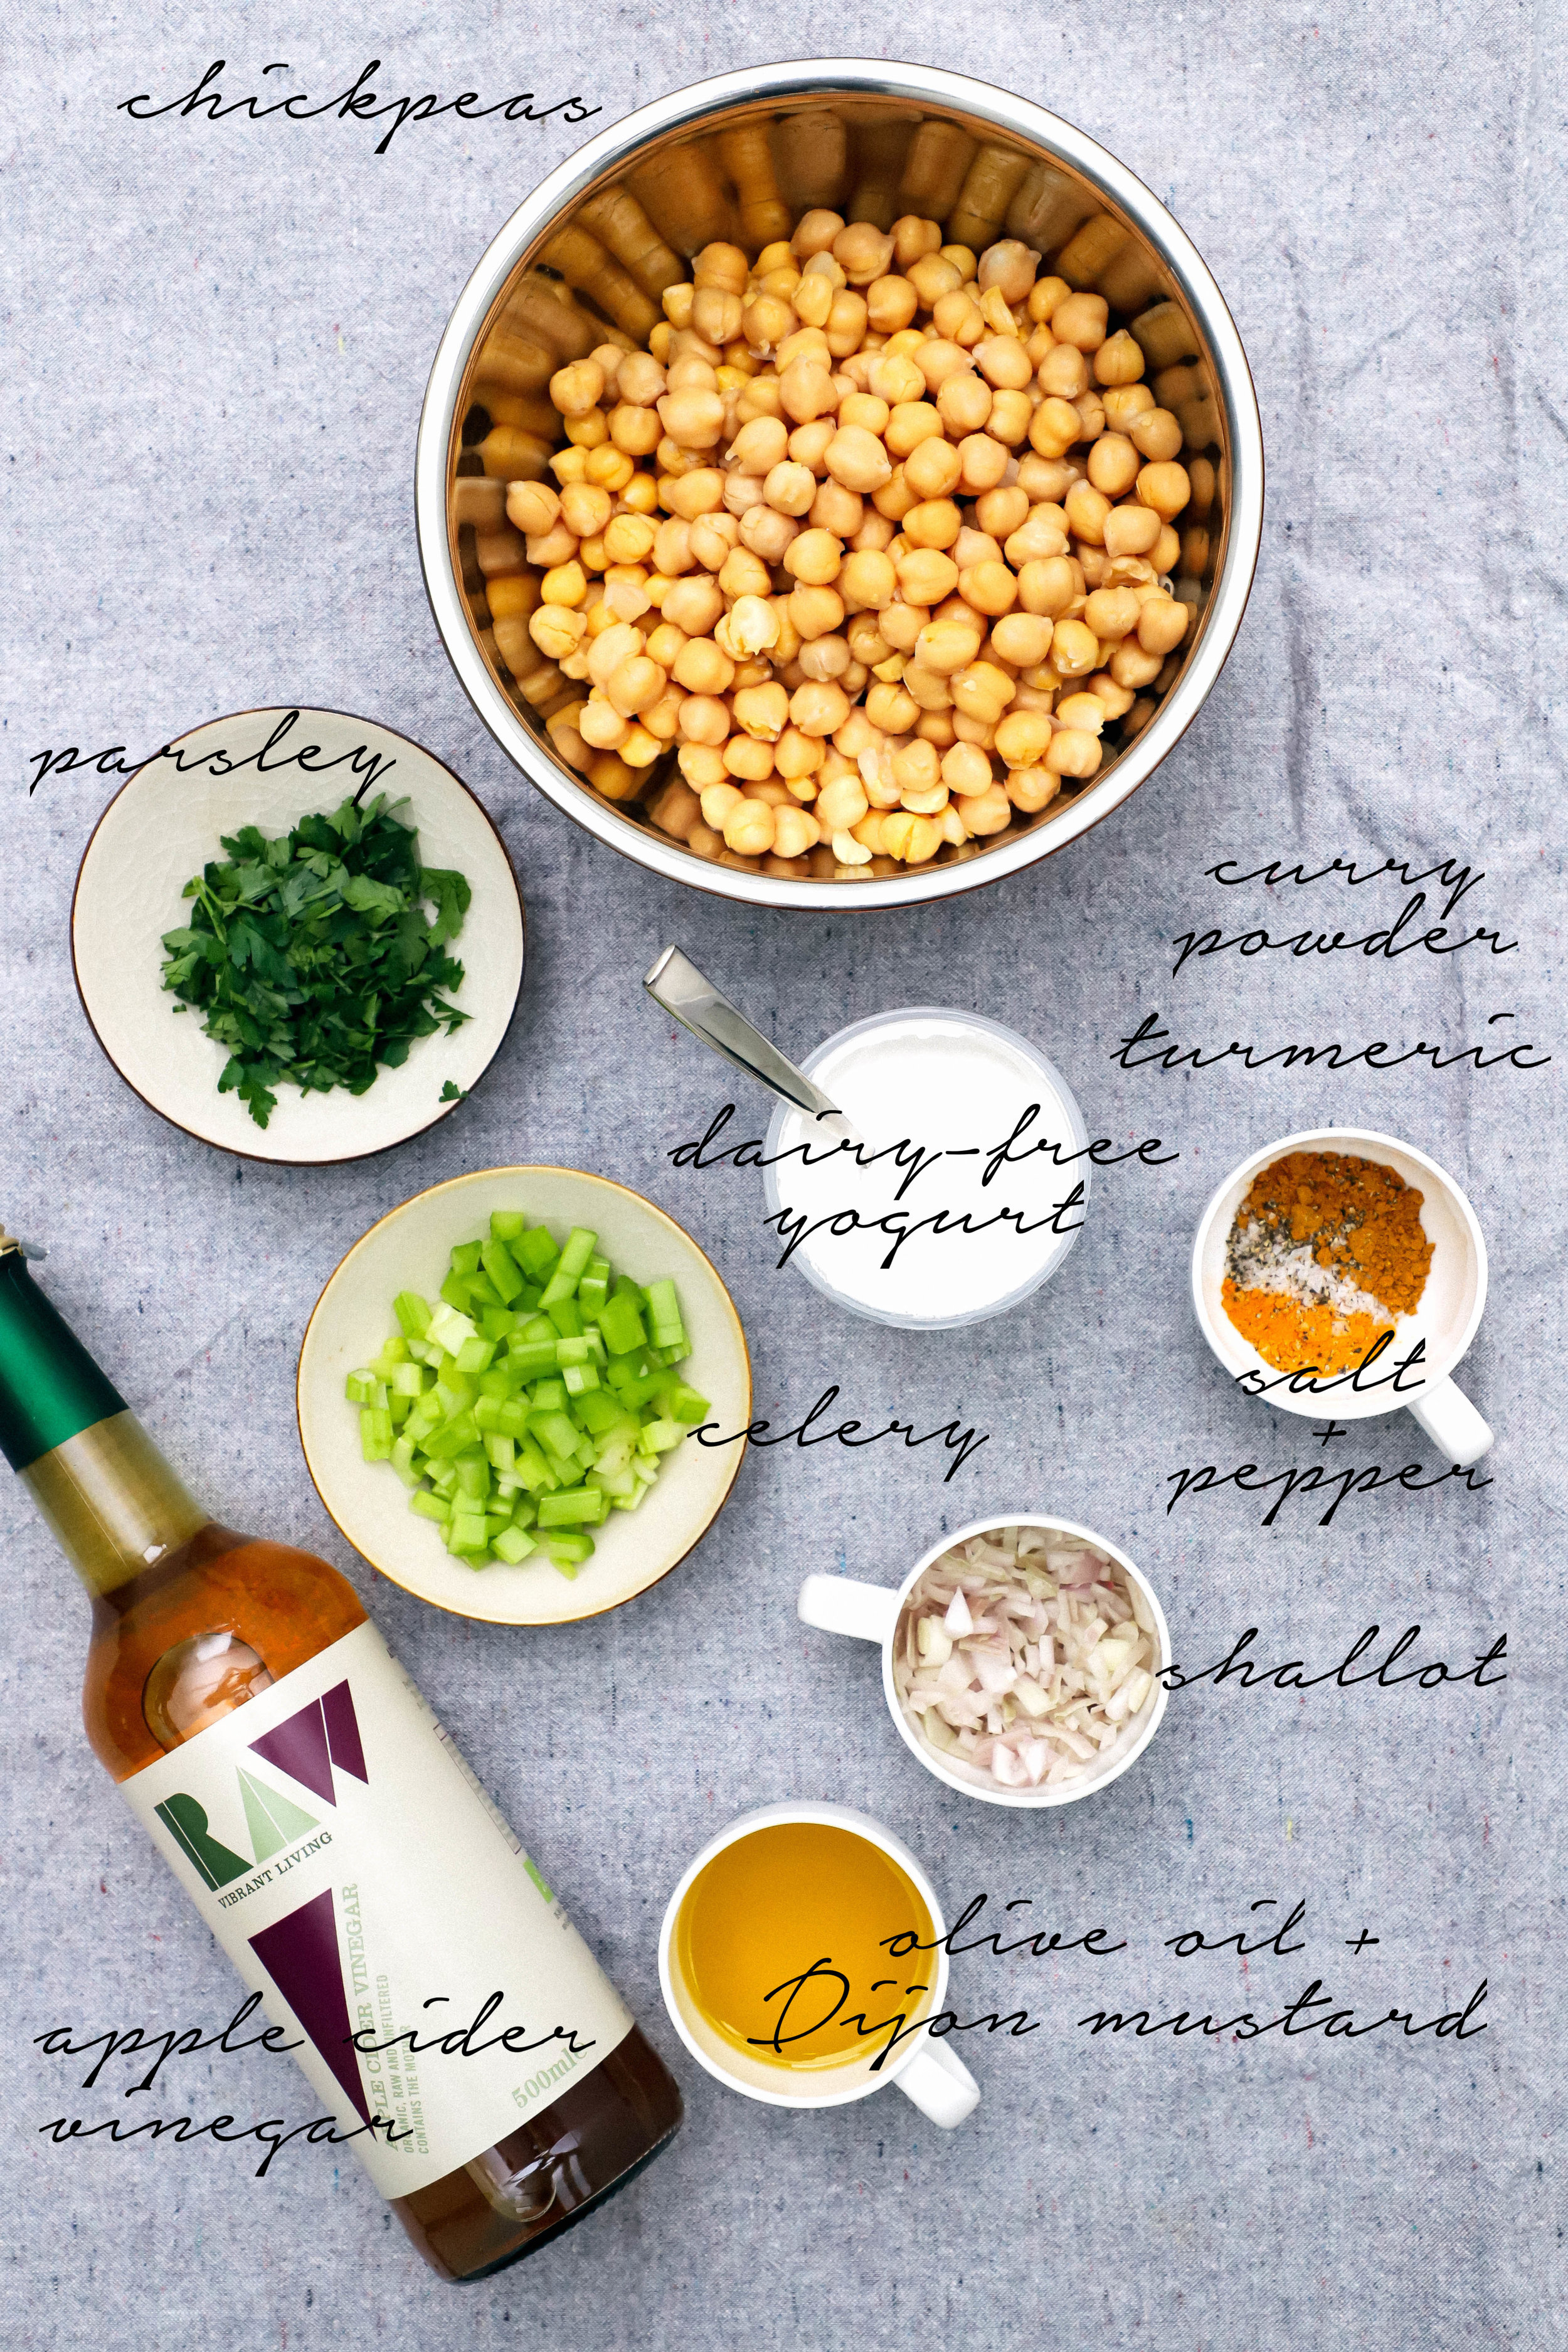 ingredients for curried chickpea salad